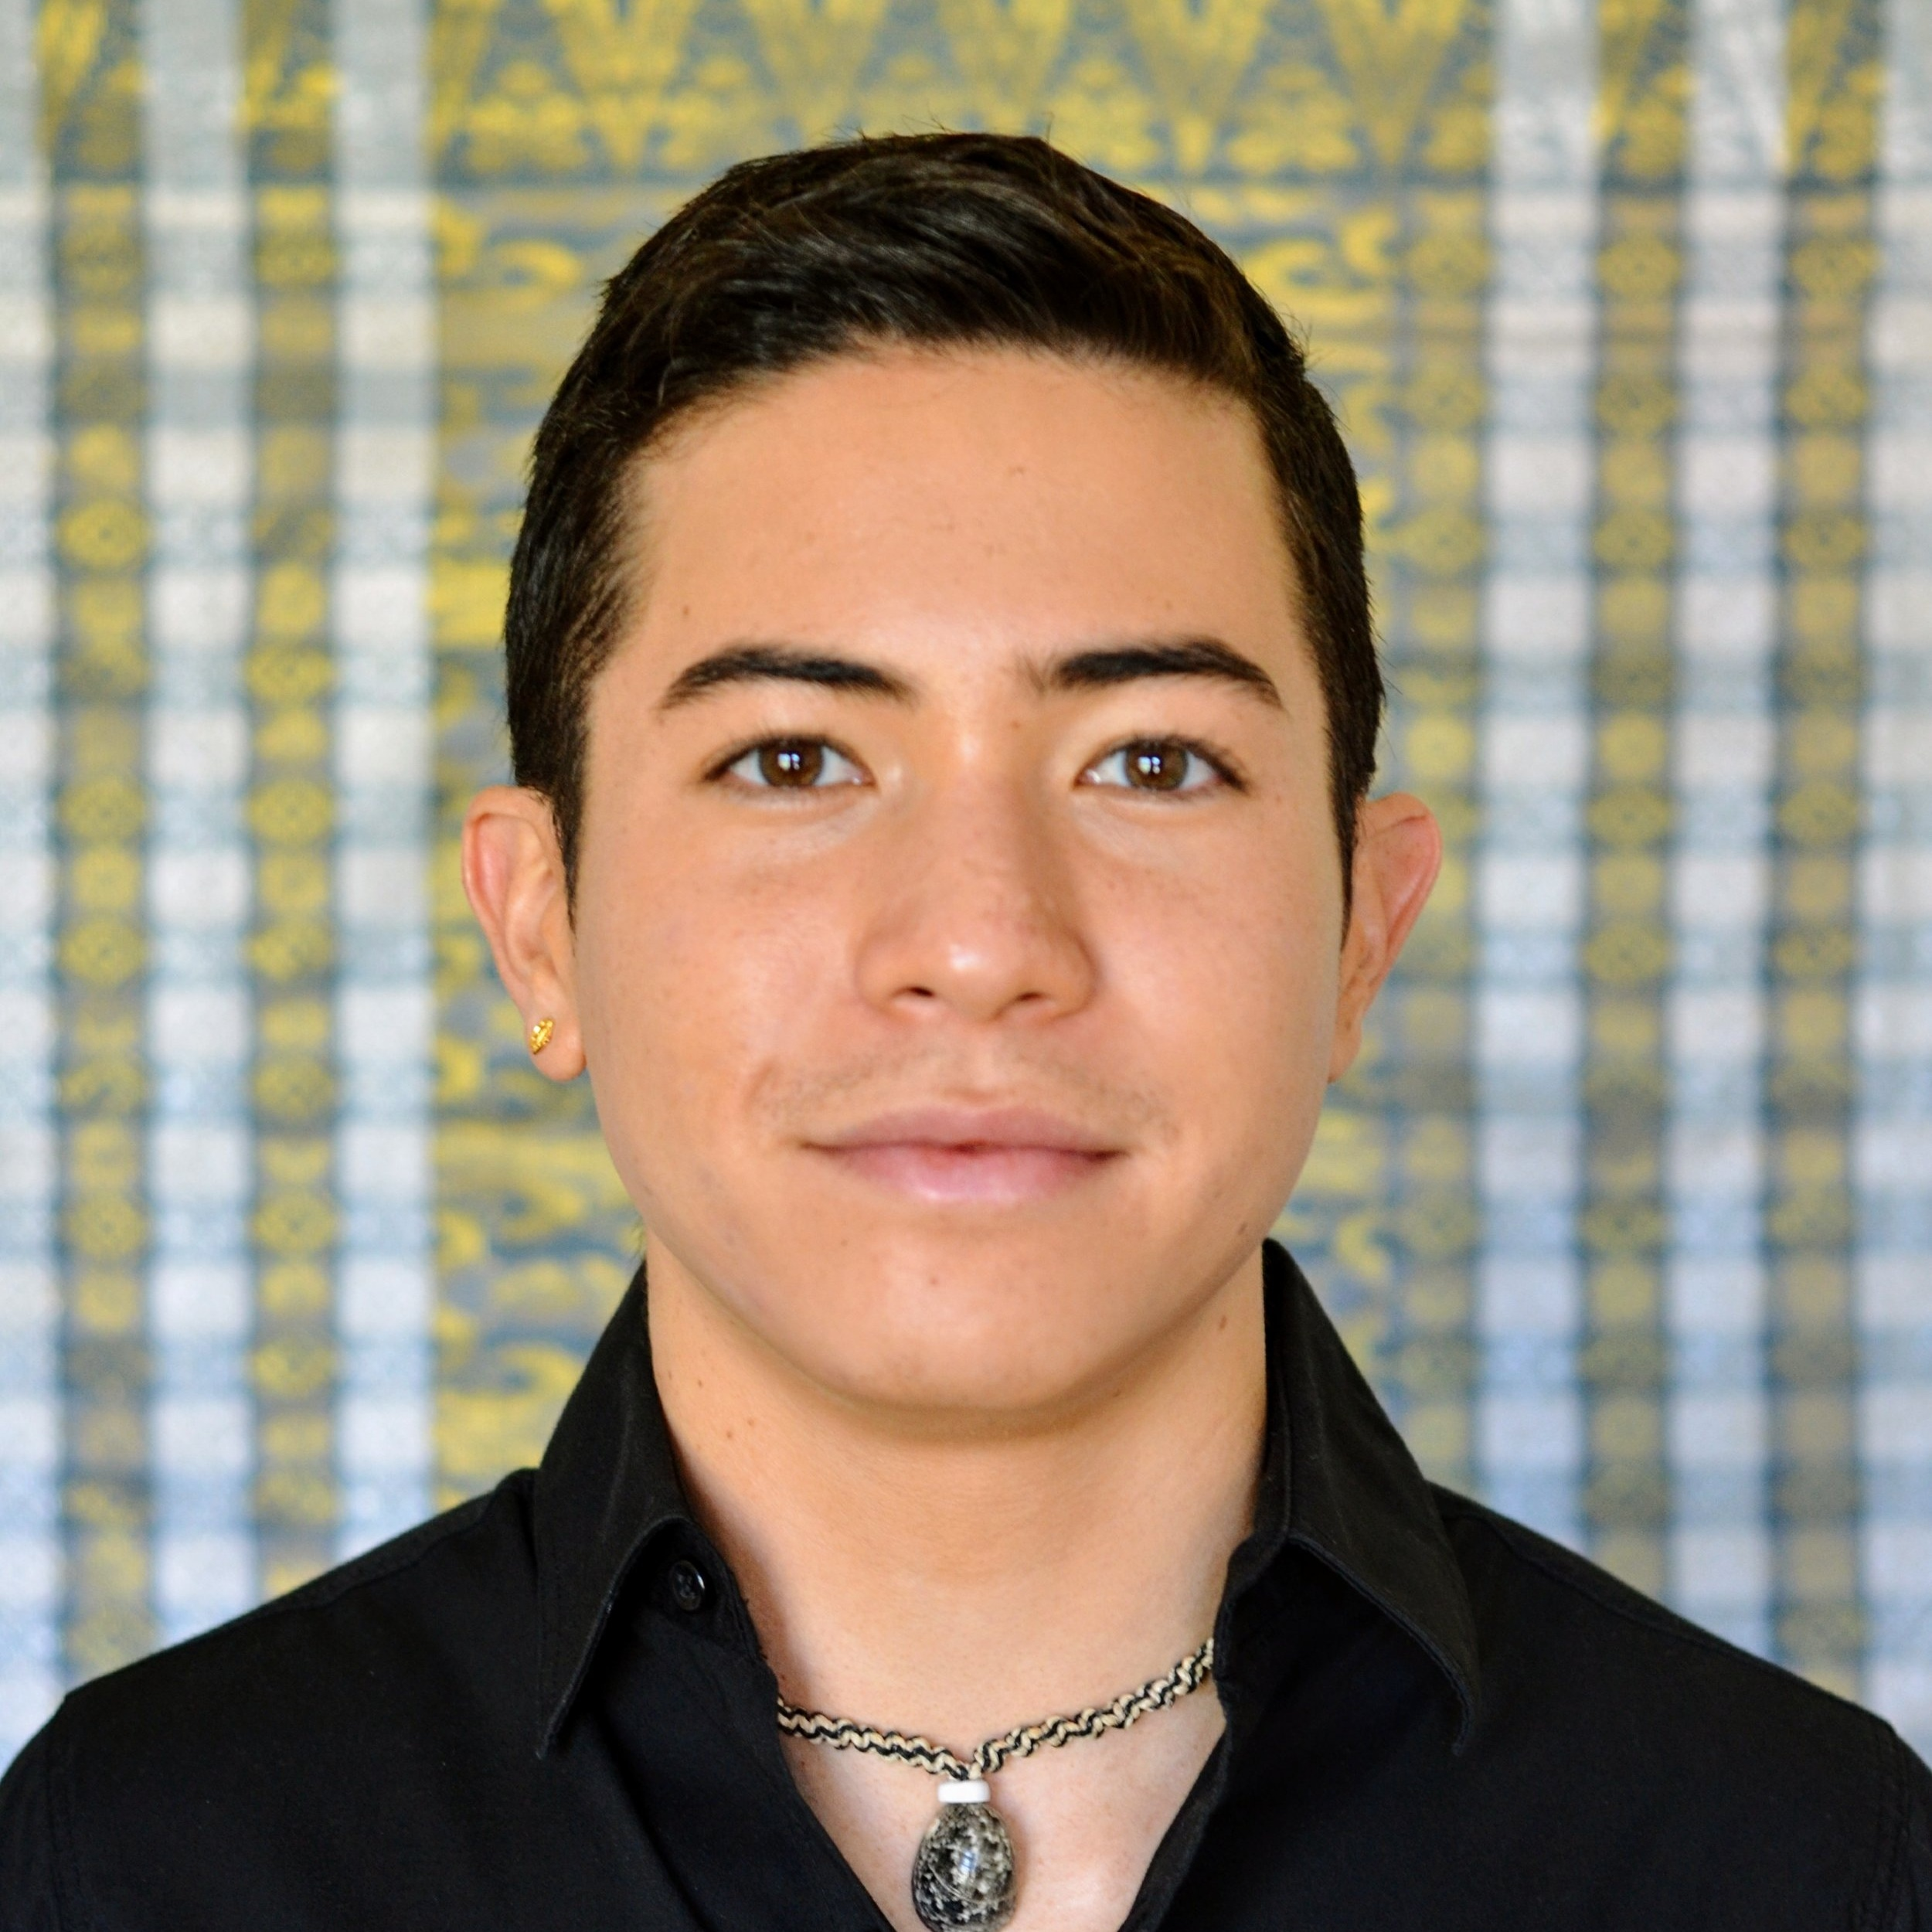 Ikaika Ramones - Ikaika (Kanaka ʻŌiwi) is a PhD student in social anthropology at New York University. His research engages with the roles of philanthropy and bureaucracy in projects of social change. Specifically, he examines…read more